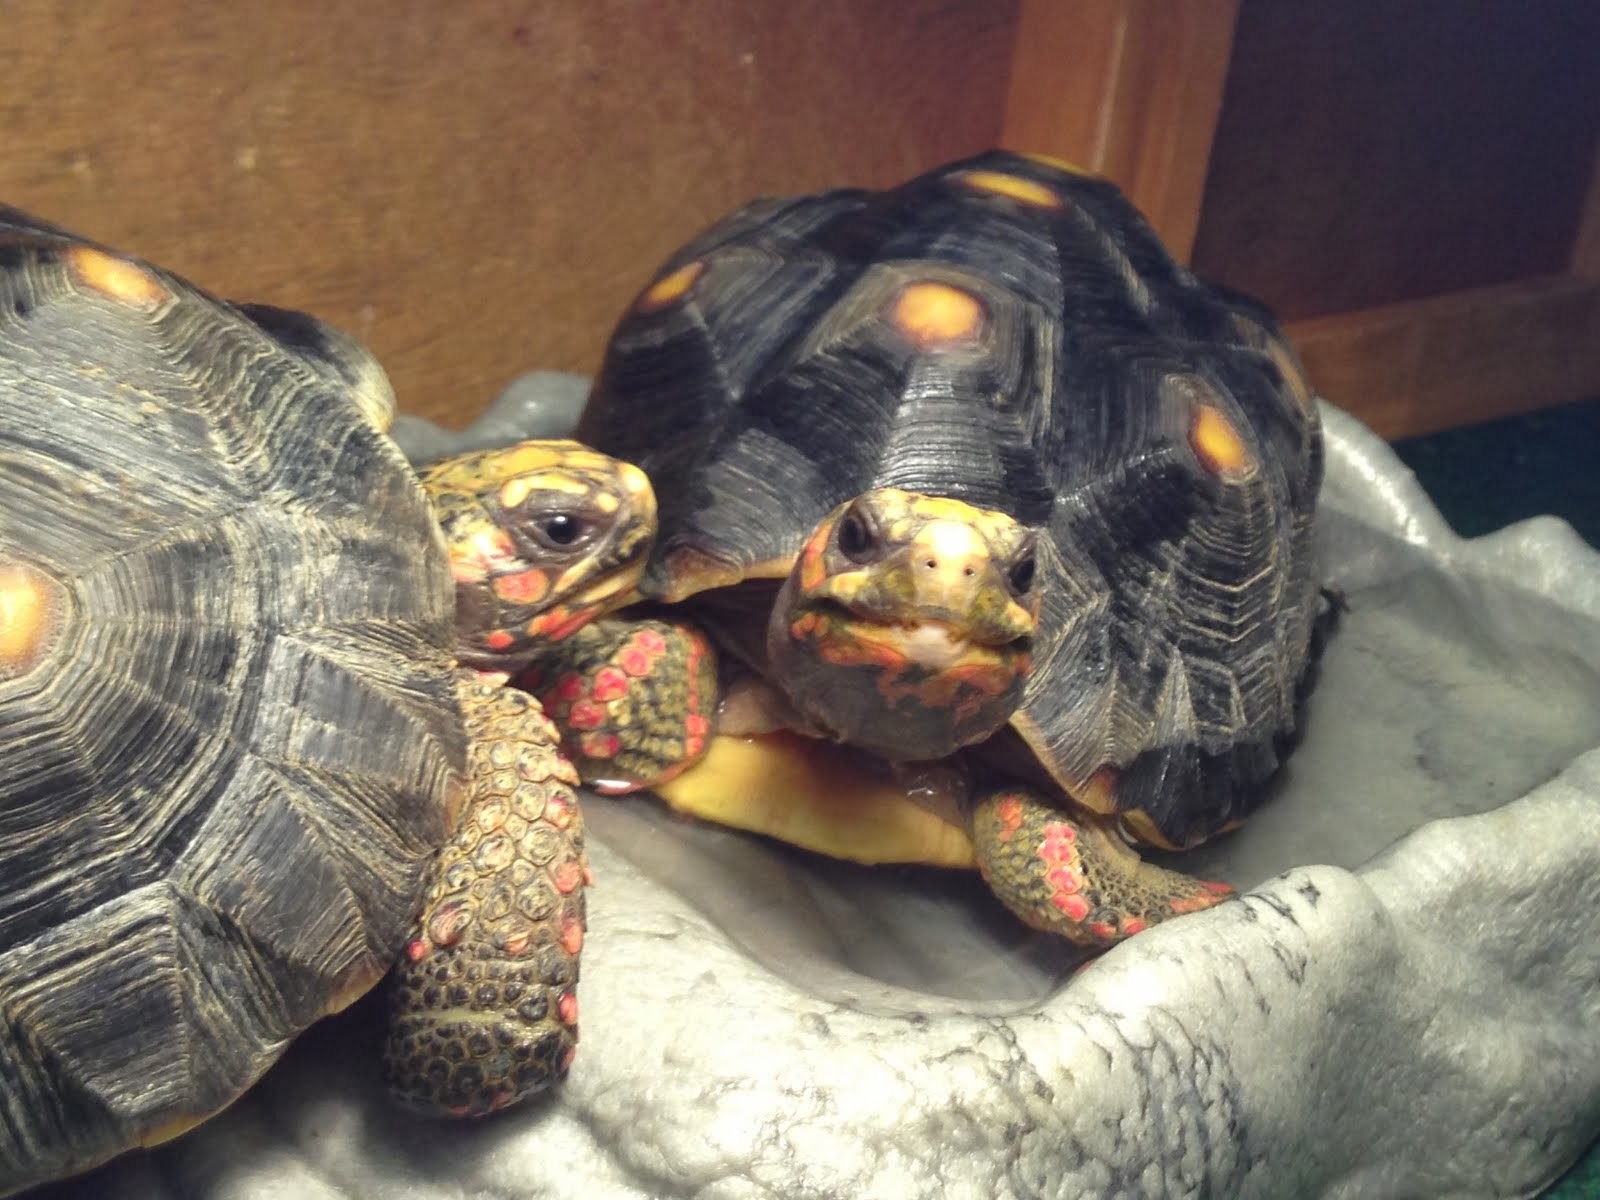 A Day in the Life of the Tortoises